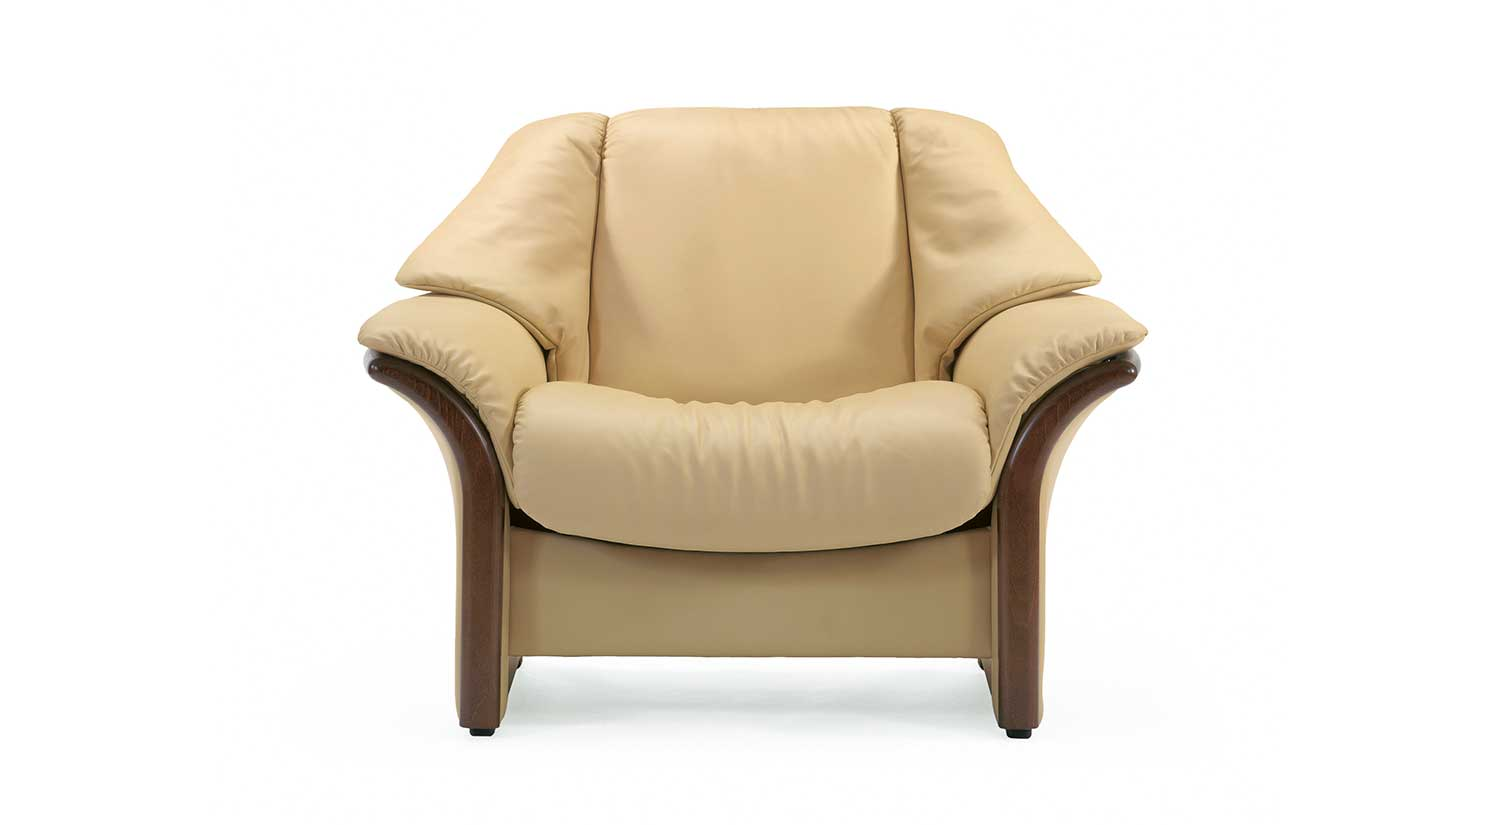 Eldorado Stressless Lowback Chair